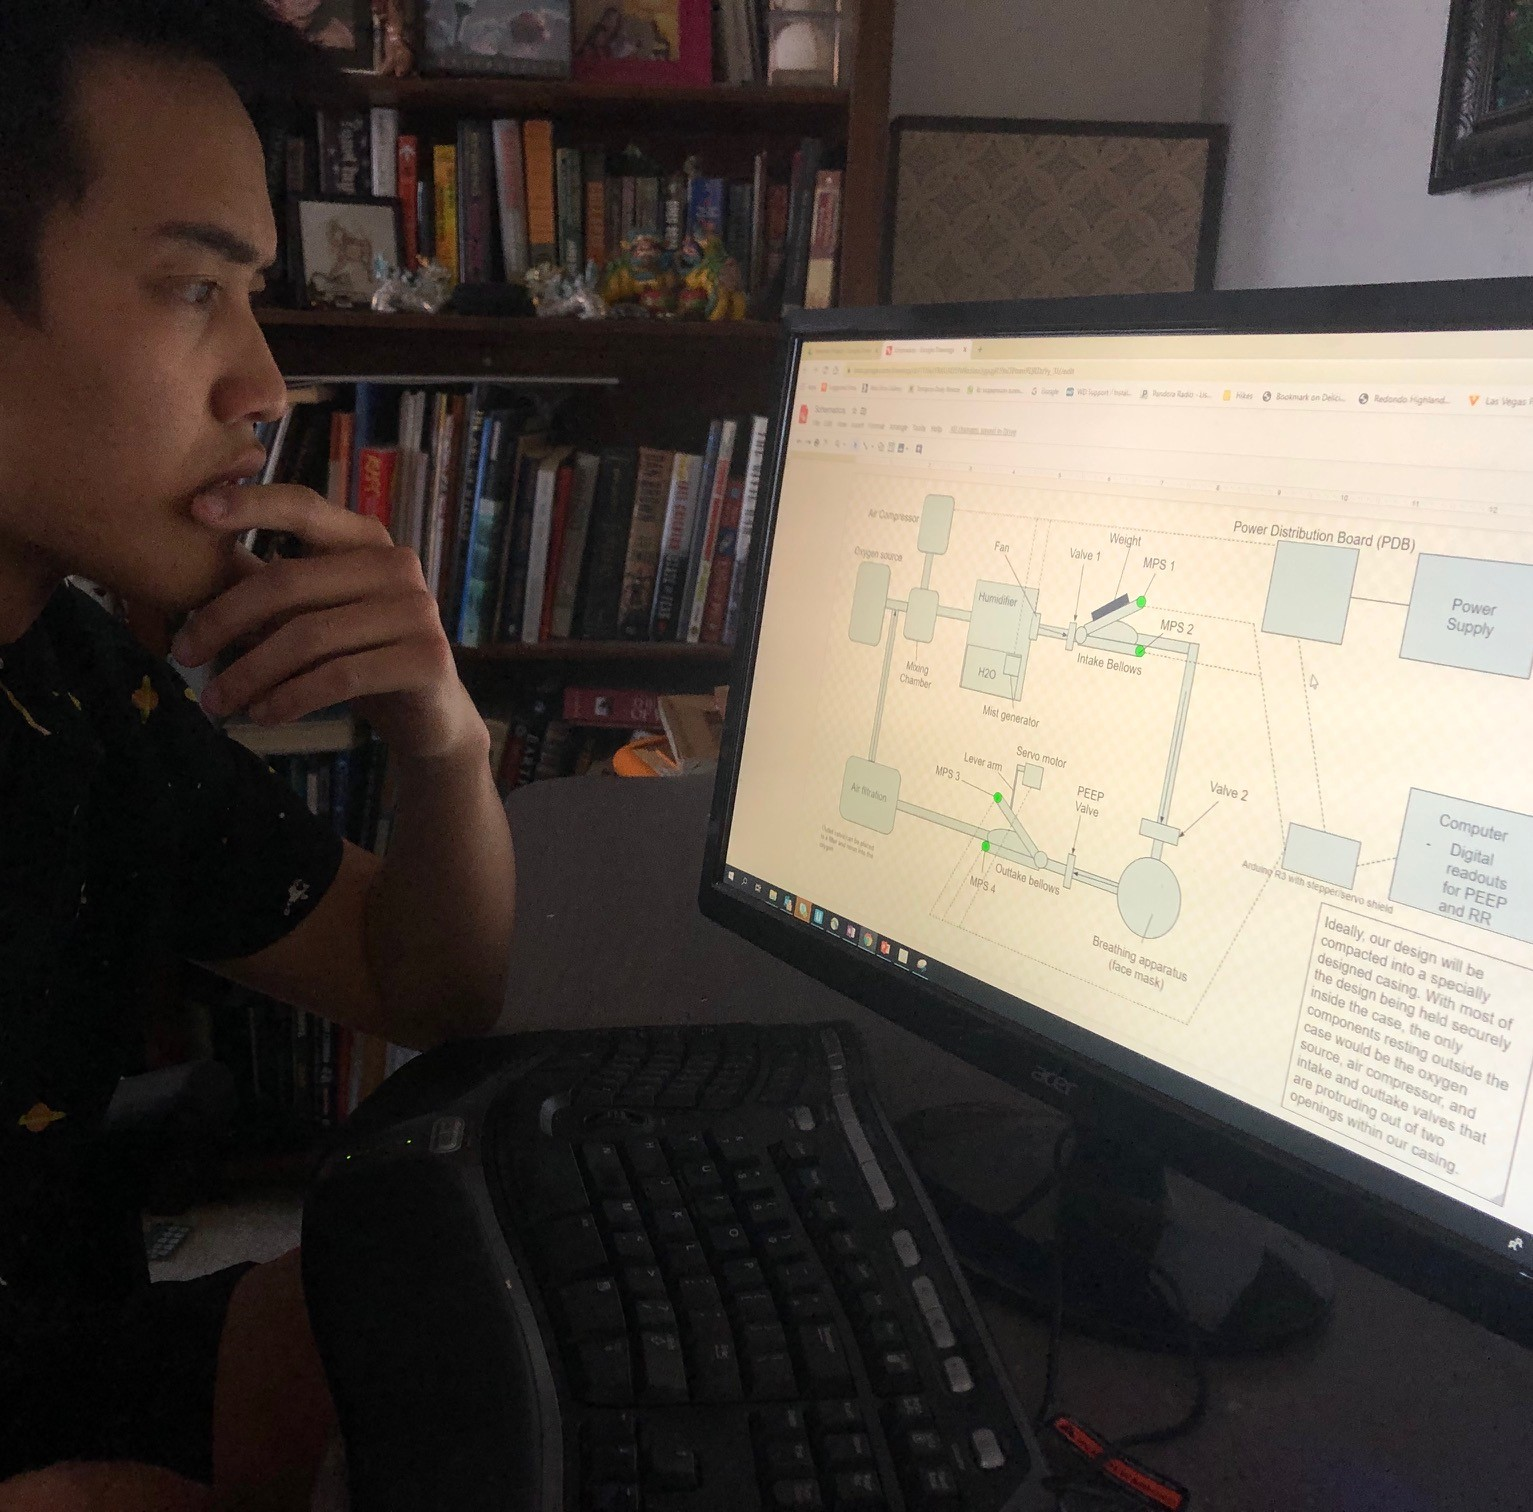 Cameron Wong, a mechanical engineering student, submitted a proposal for ventilators to the Department of Defense to help address the shortage of machines that help patients who cannot properly breathe on their own by pumping air into their lungs through a tube that has been inserted into their windpipes.